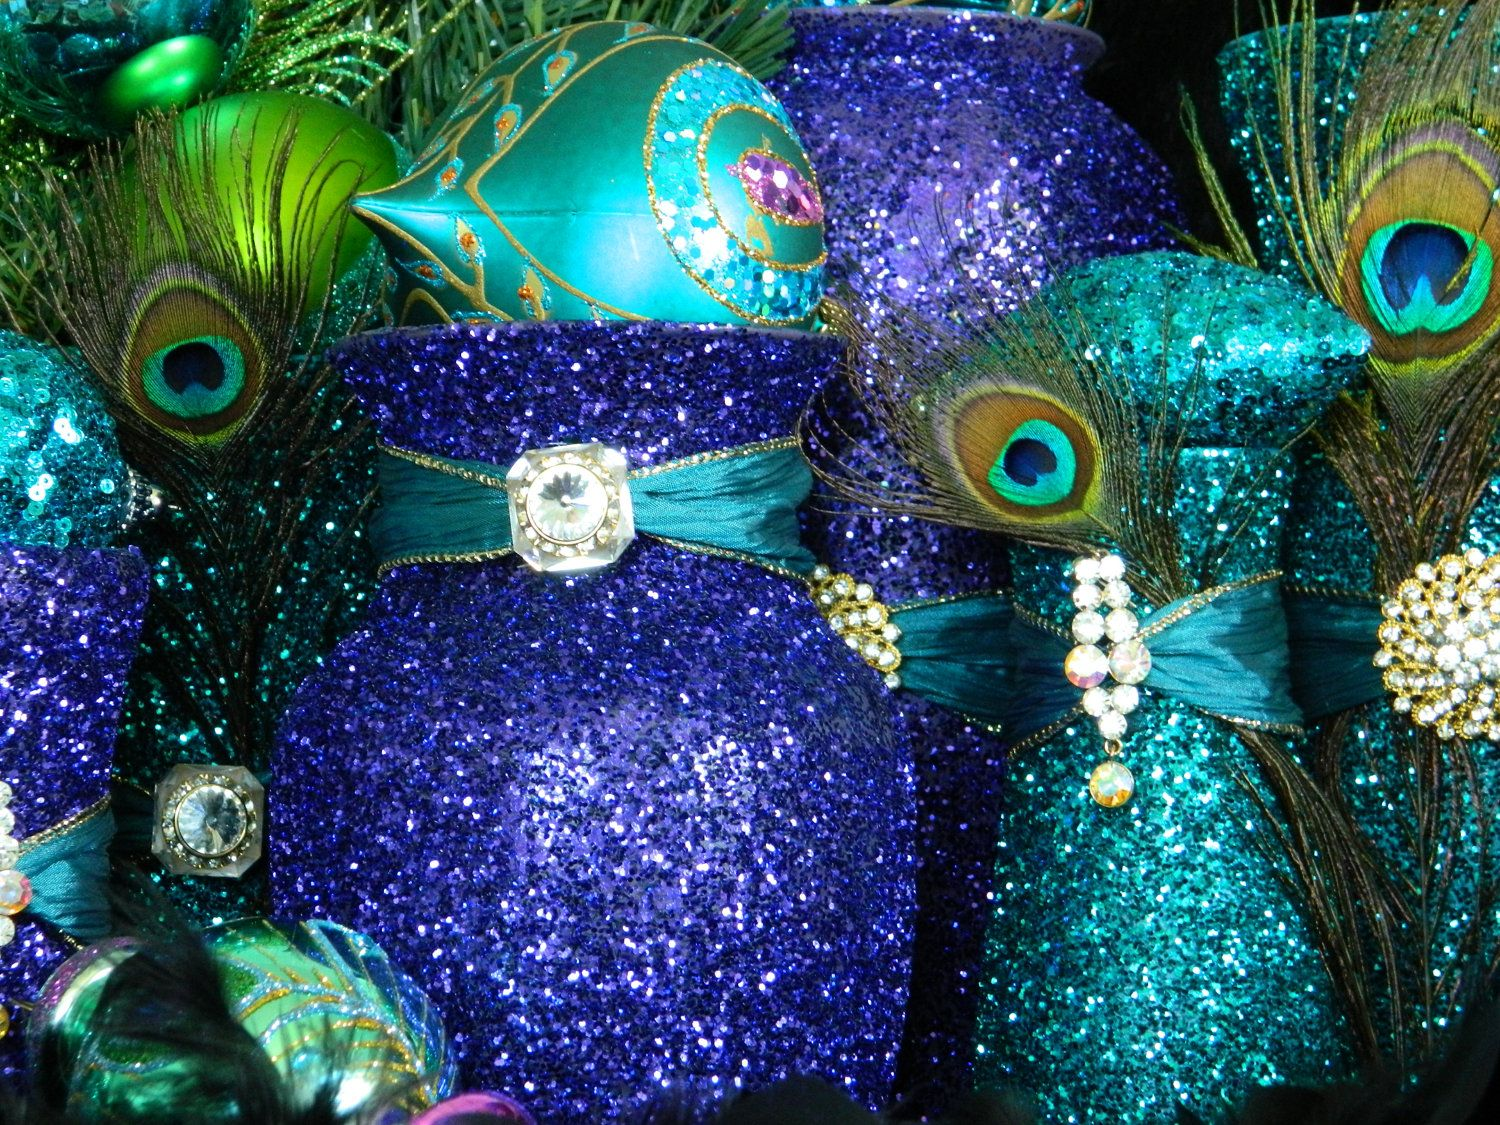 Peacock decoratoins decorations peacock centerpiece peacock peacock wedding decorations peacock centerpiece make your own with mason jars mod podge glitter junglespirit Images